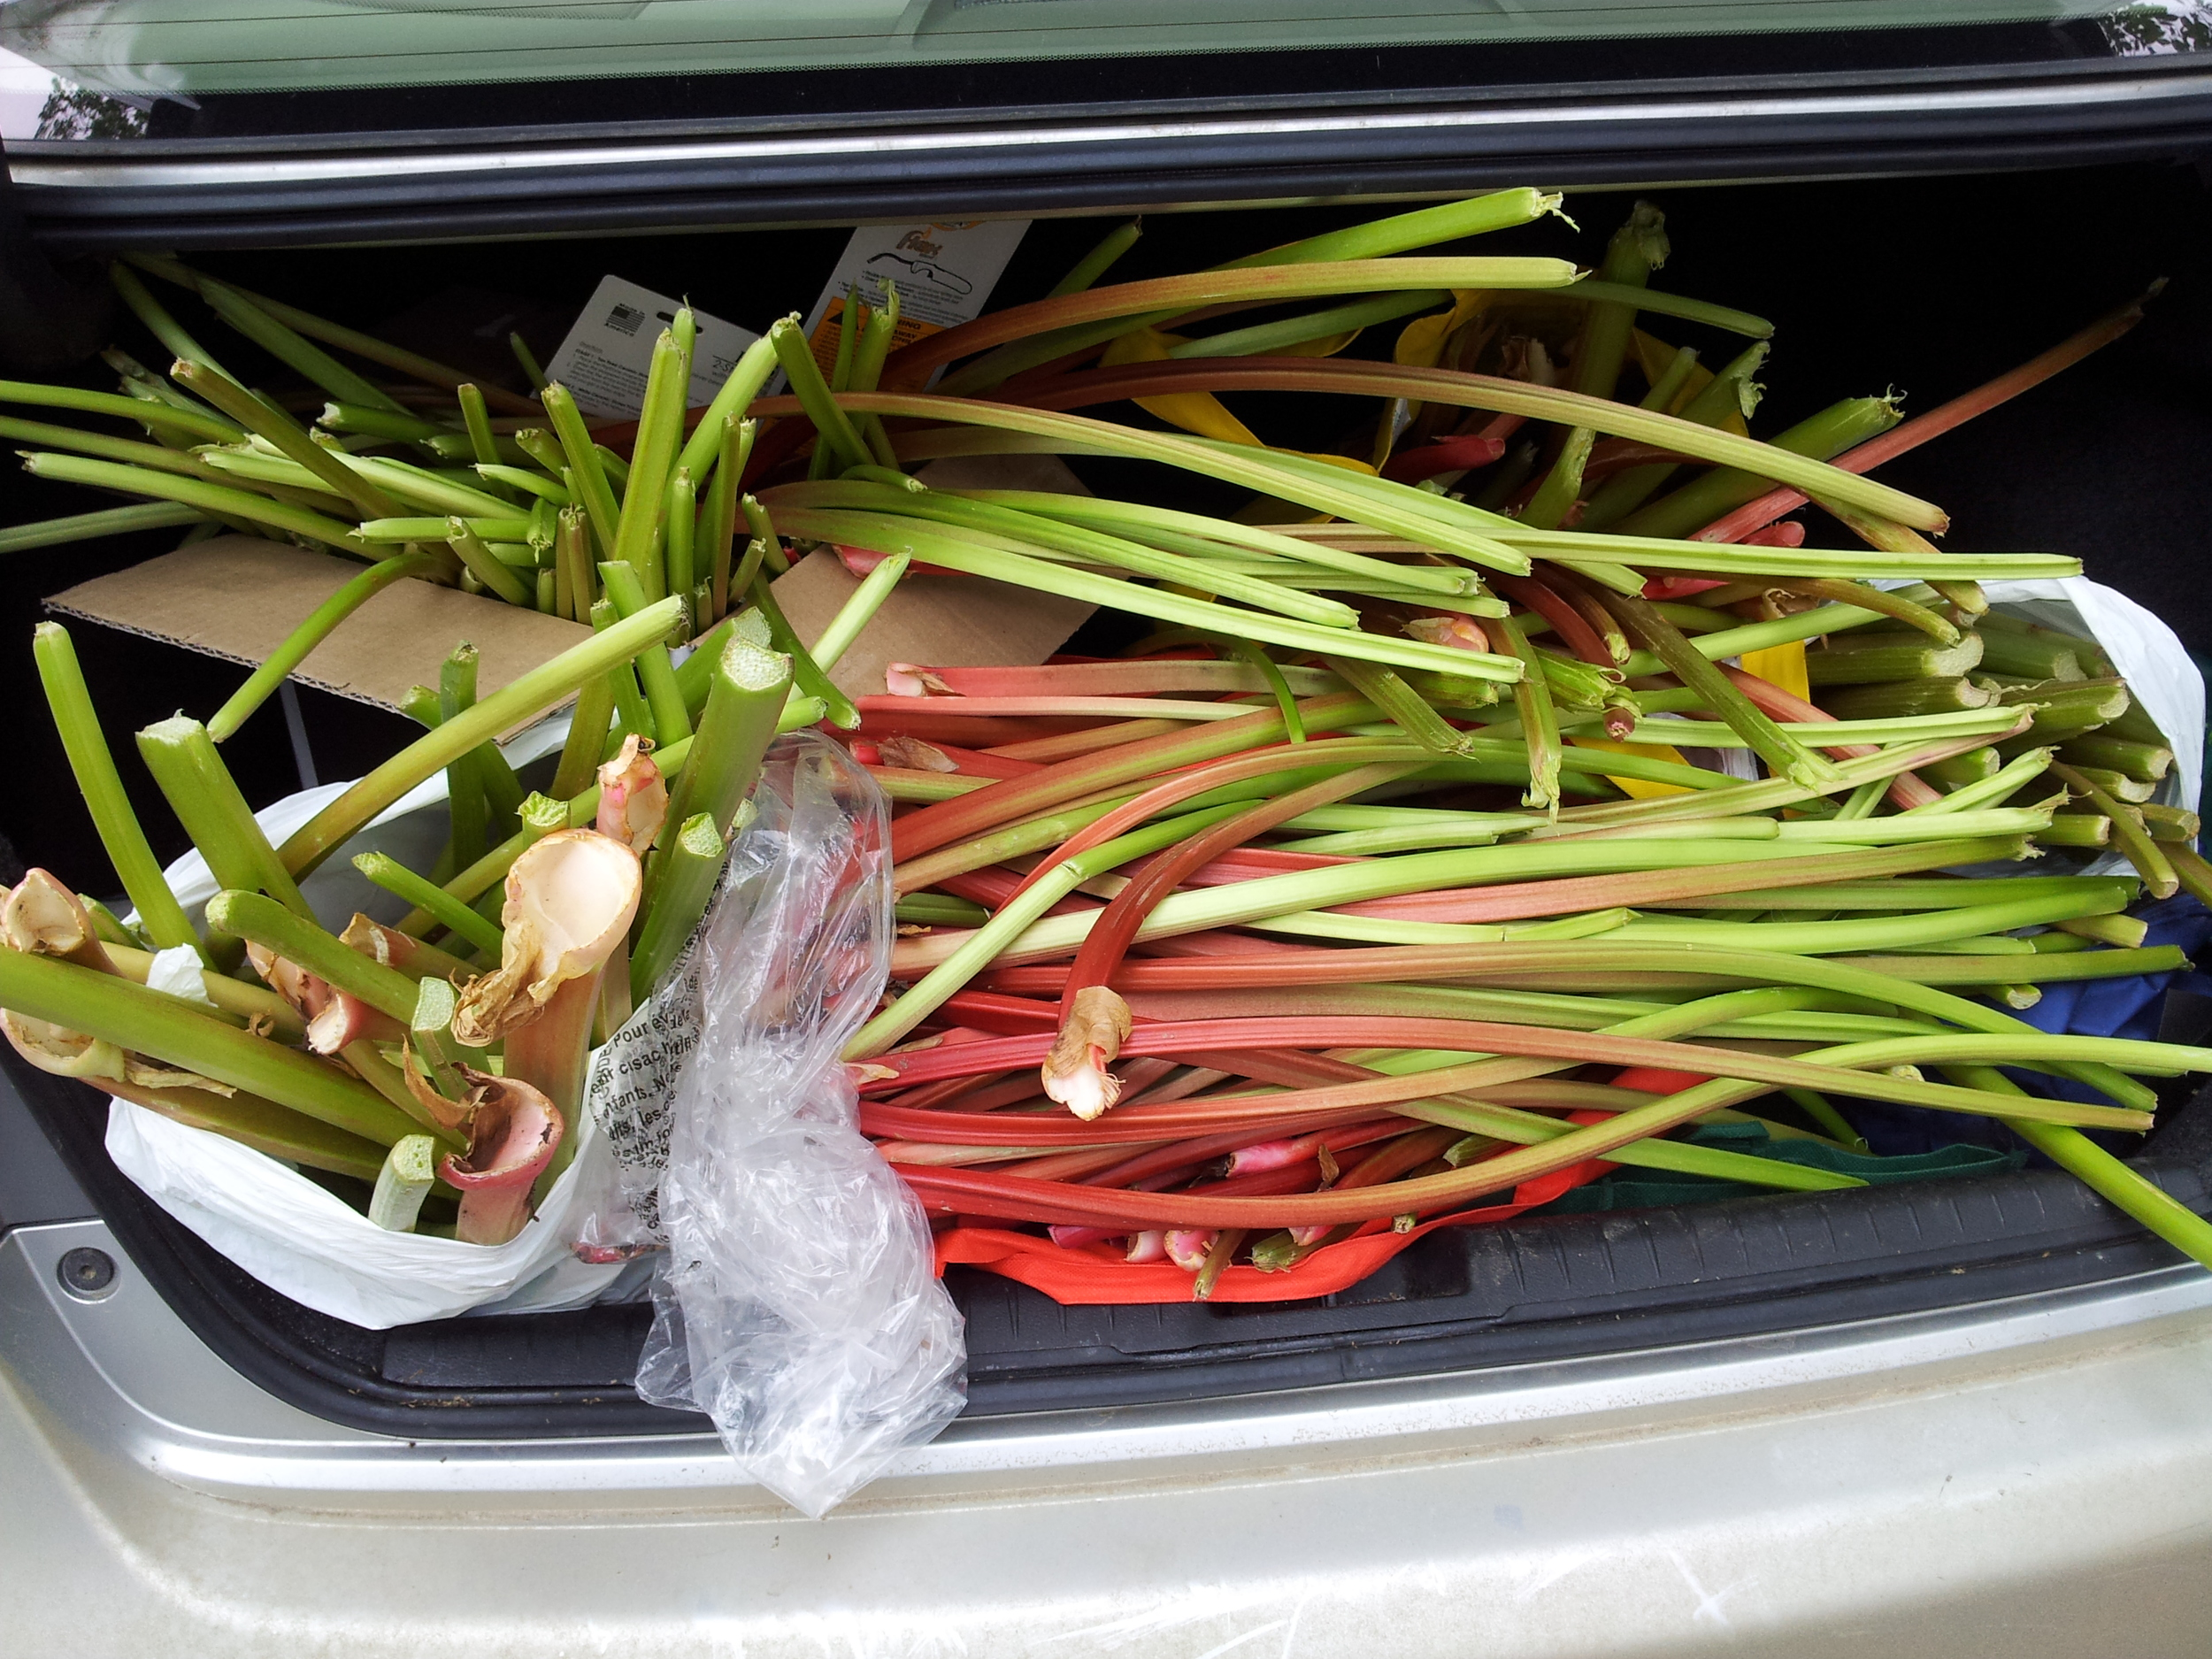 Driving around the city to pick up our rhubarb